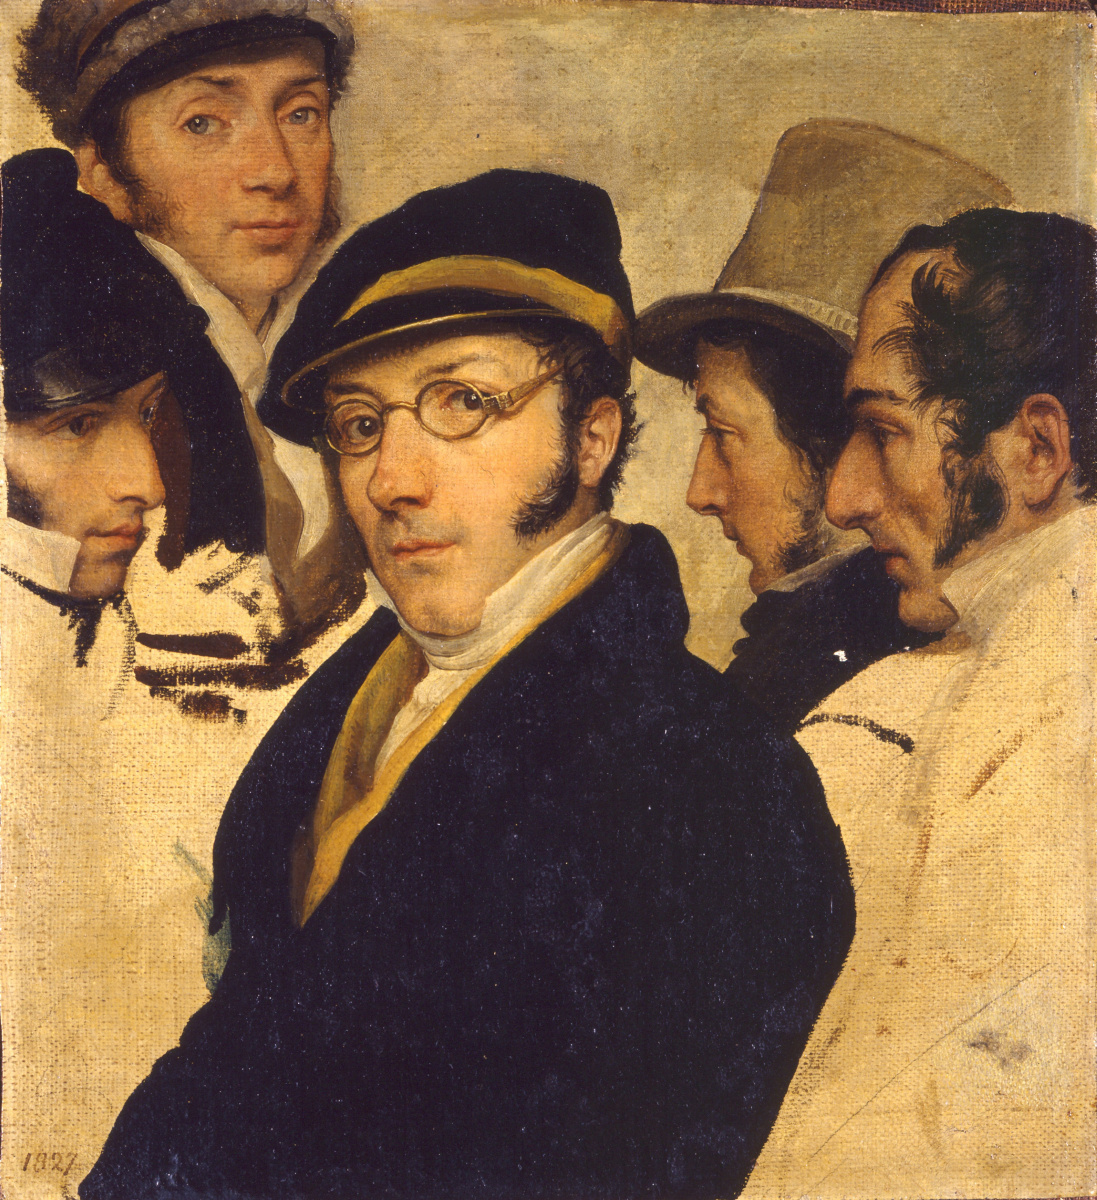 Francesco Ayets. Self-portrait with friends